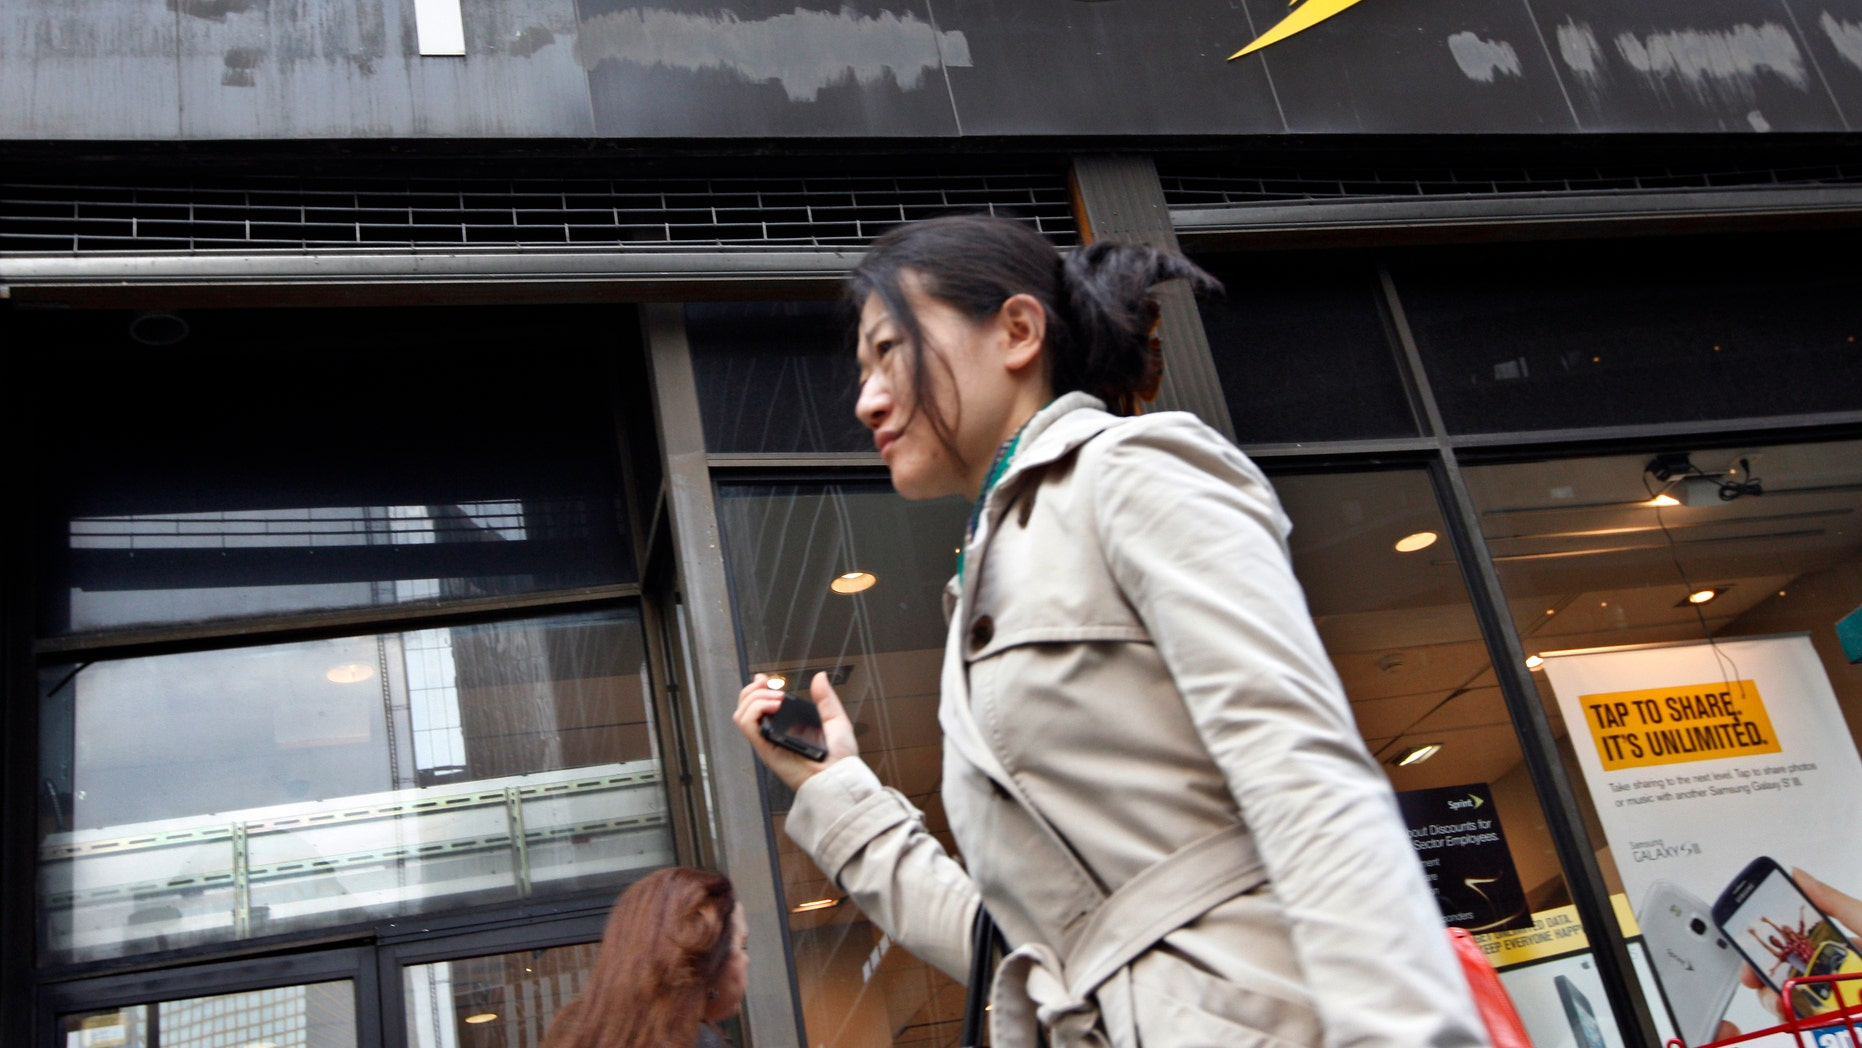 A woman walks past a Sprint store in New York's financial district, October 15, 2012.